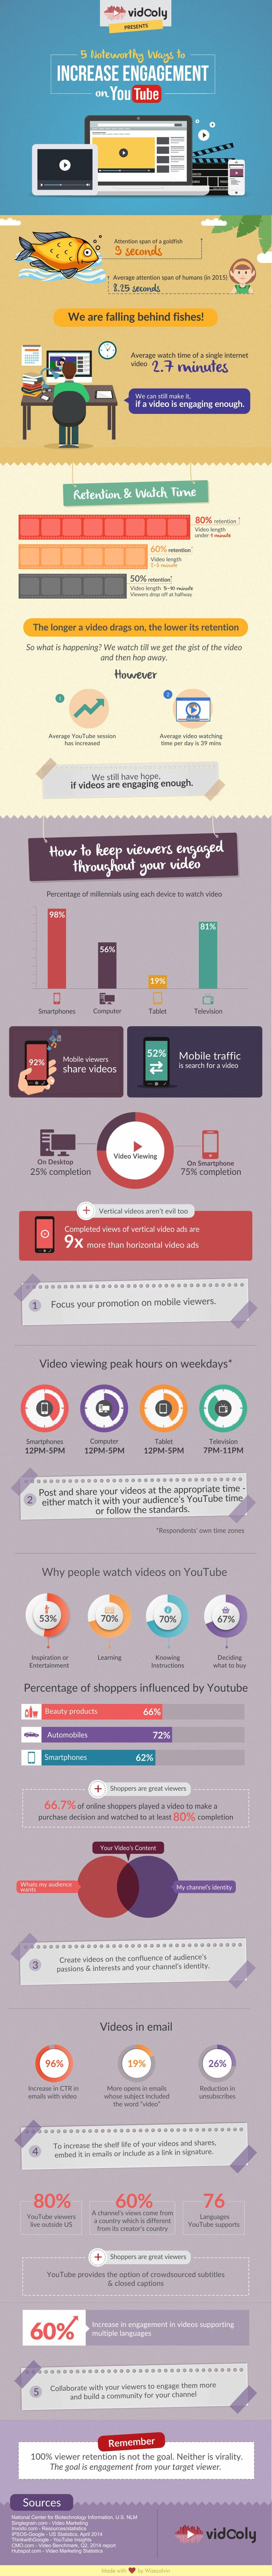 5 Noteworthy Ways to Increase Engagement for Your YouTube Videos (Infographic)